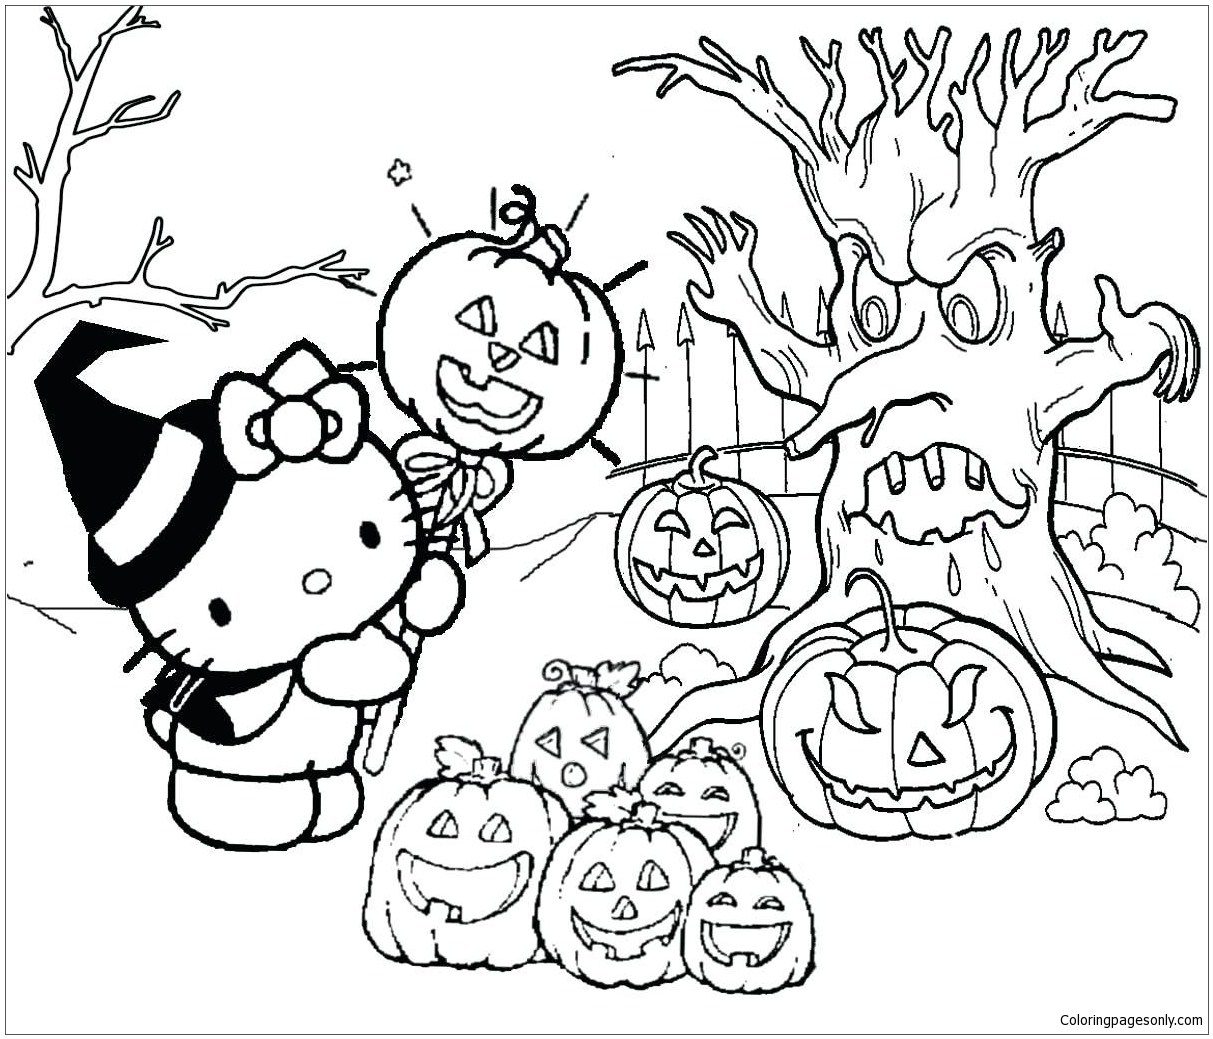 Hello Kitty Halloween 1 Coloring Pages Cartoons Coloring Pages Free Printable Coloring Pages Online